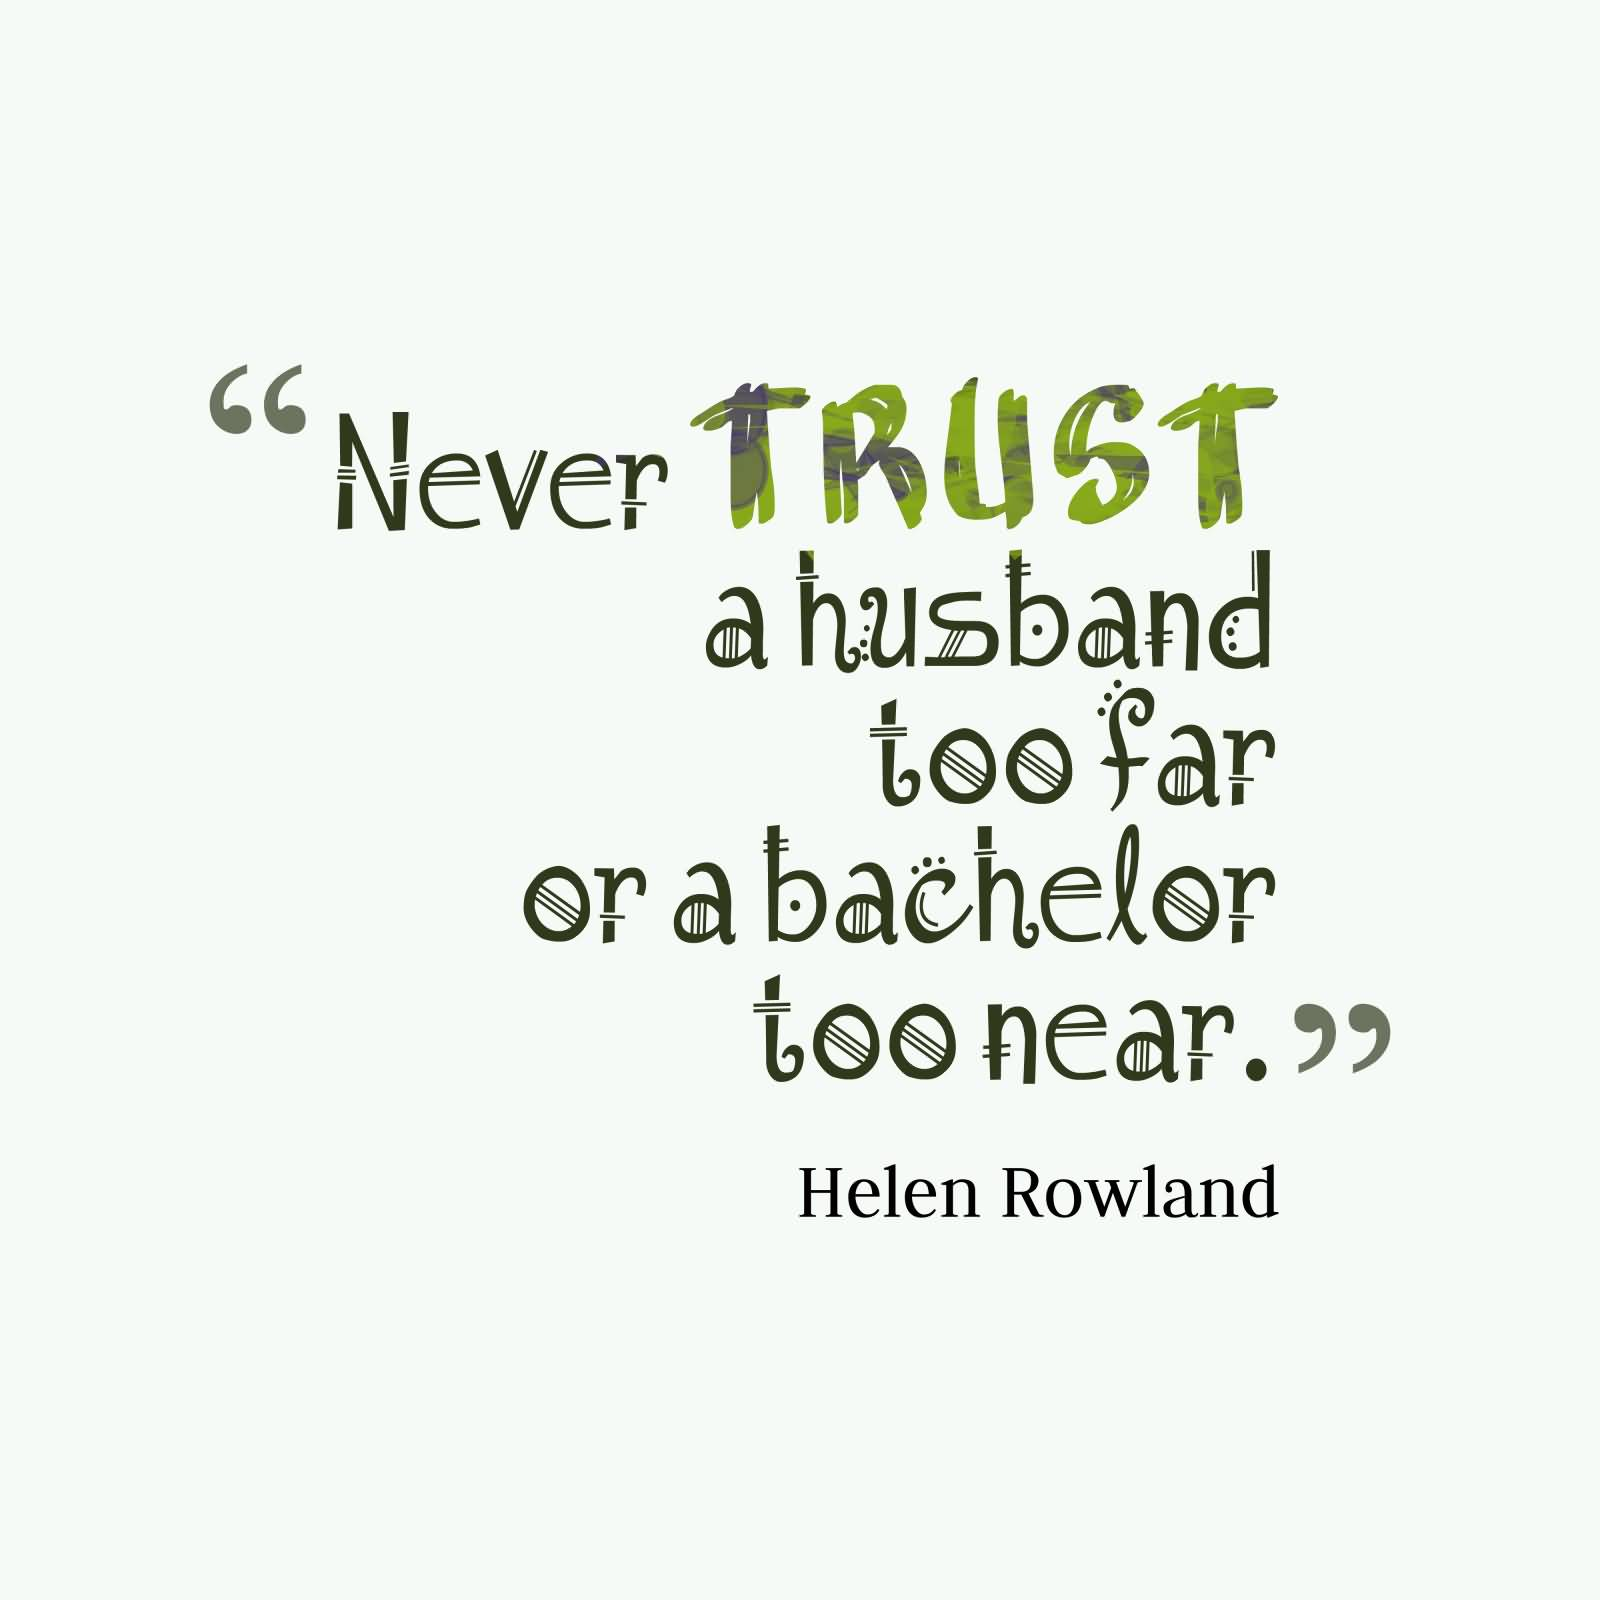 62 all time best never trust quotes and sayings never trust a husband too far nor a bachelor too near helen rowland buycottarizona Choice Image